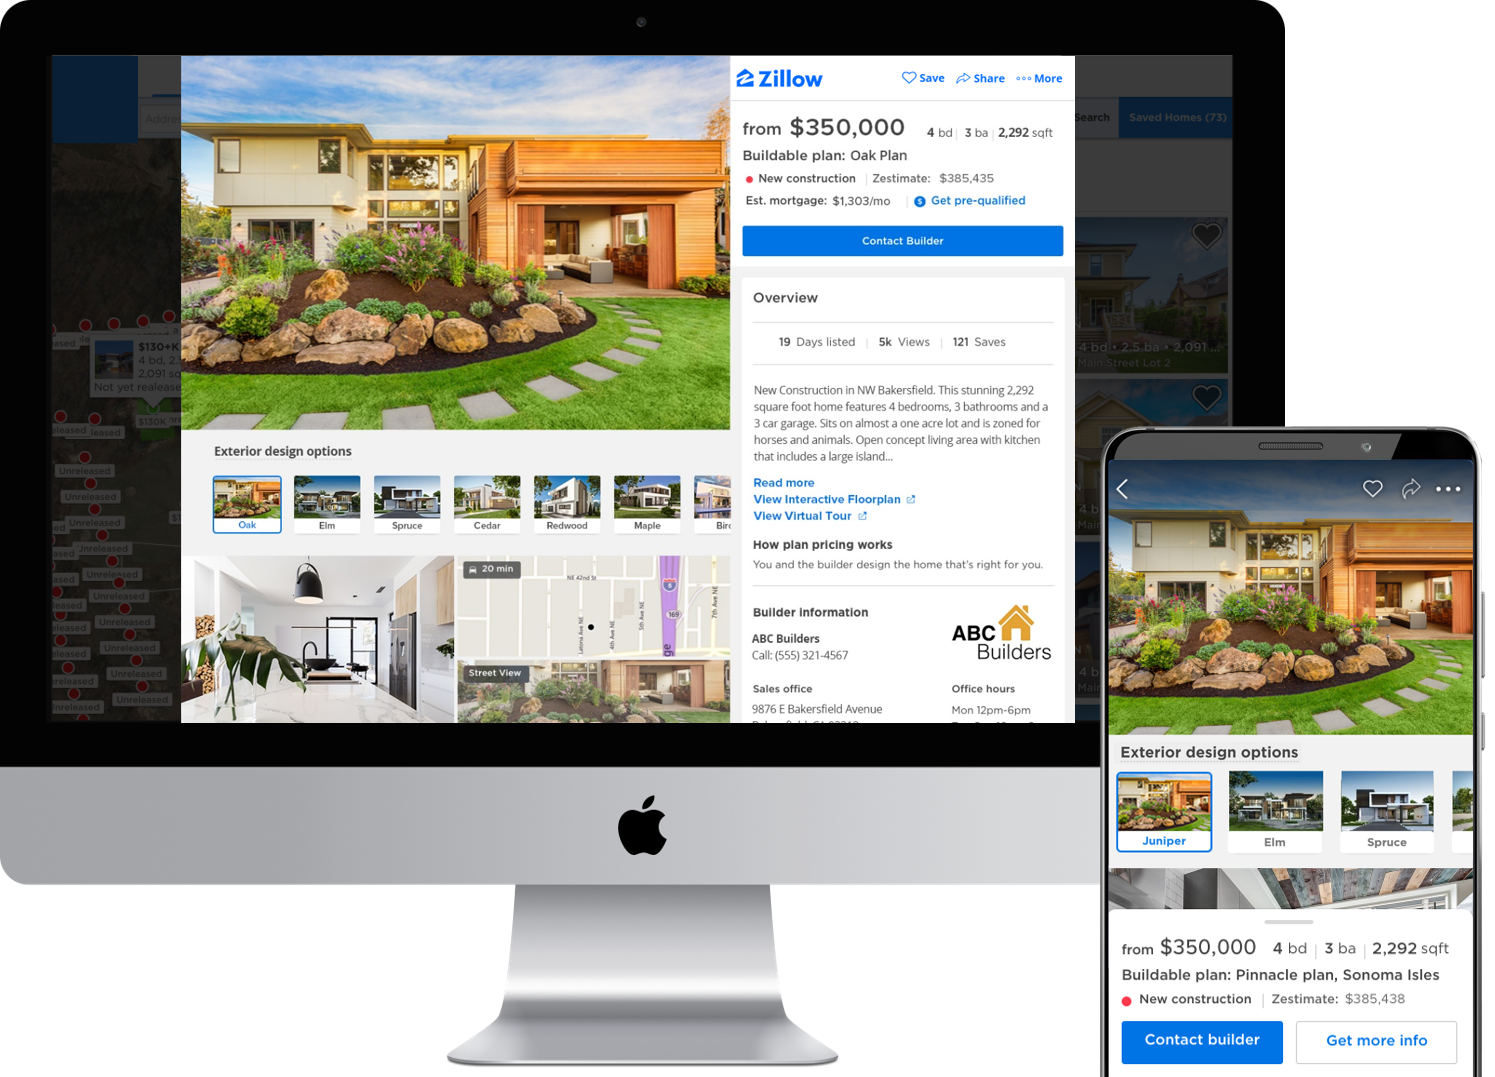 New Construction & Home Builder Advertising | Zillow Group on chase mobile, instagram mobile, bank of america mobile,